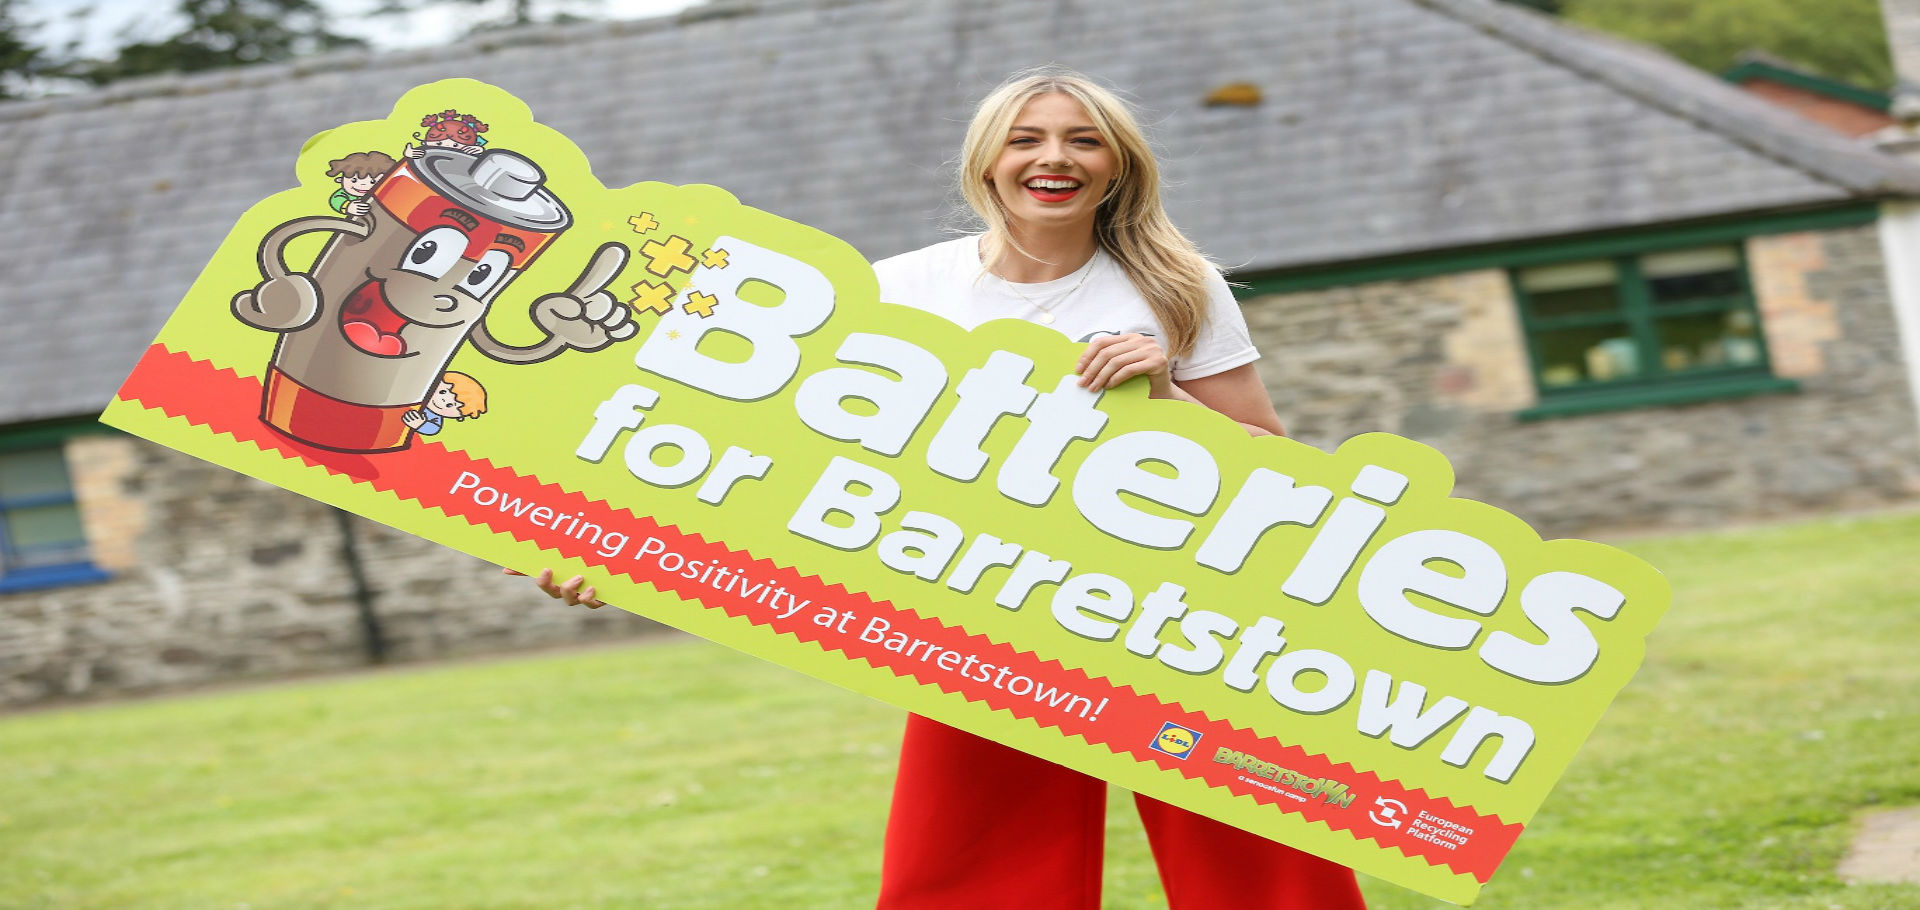 ERP Blathnaid Treacy launches Batteries for Barretstown